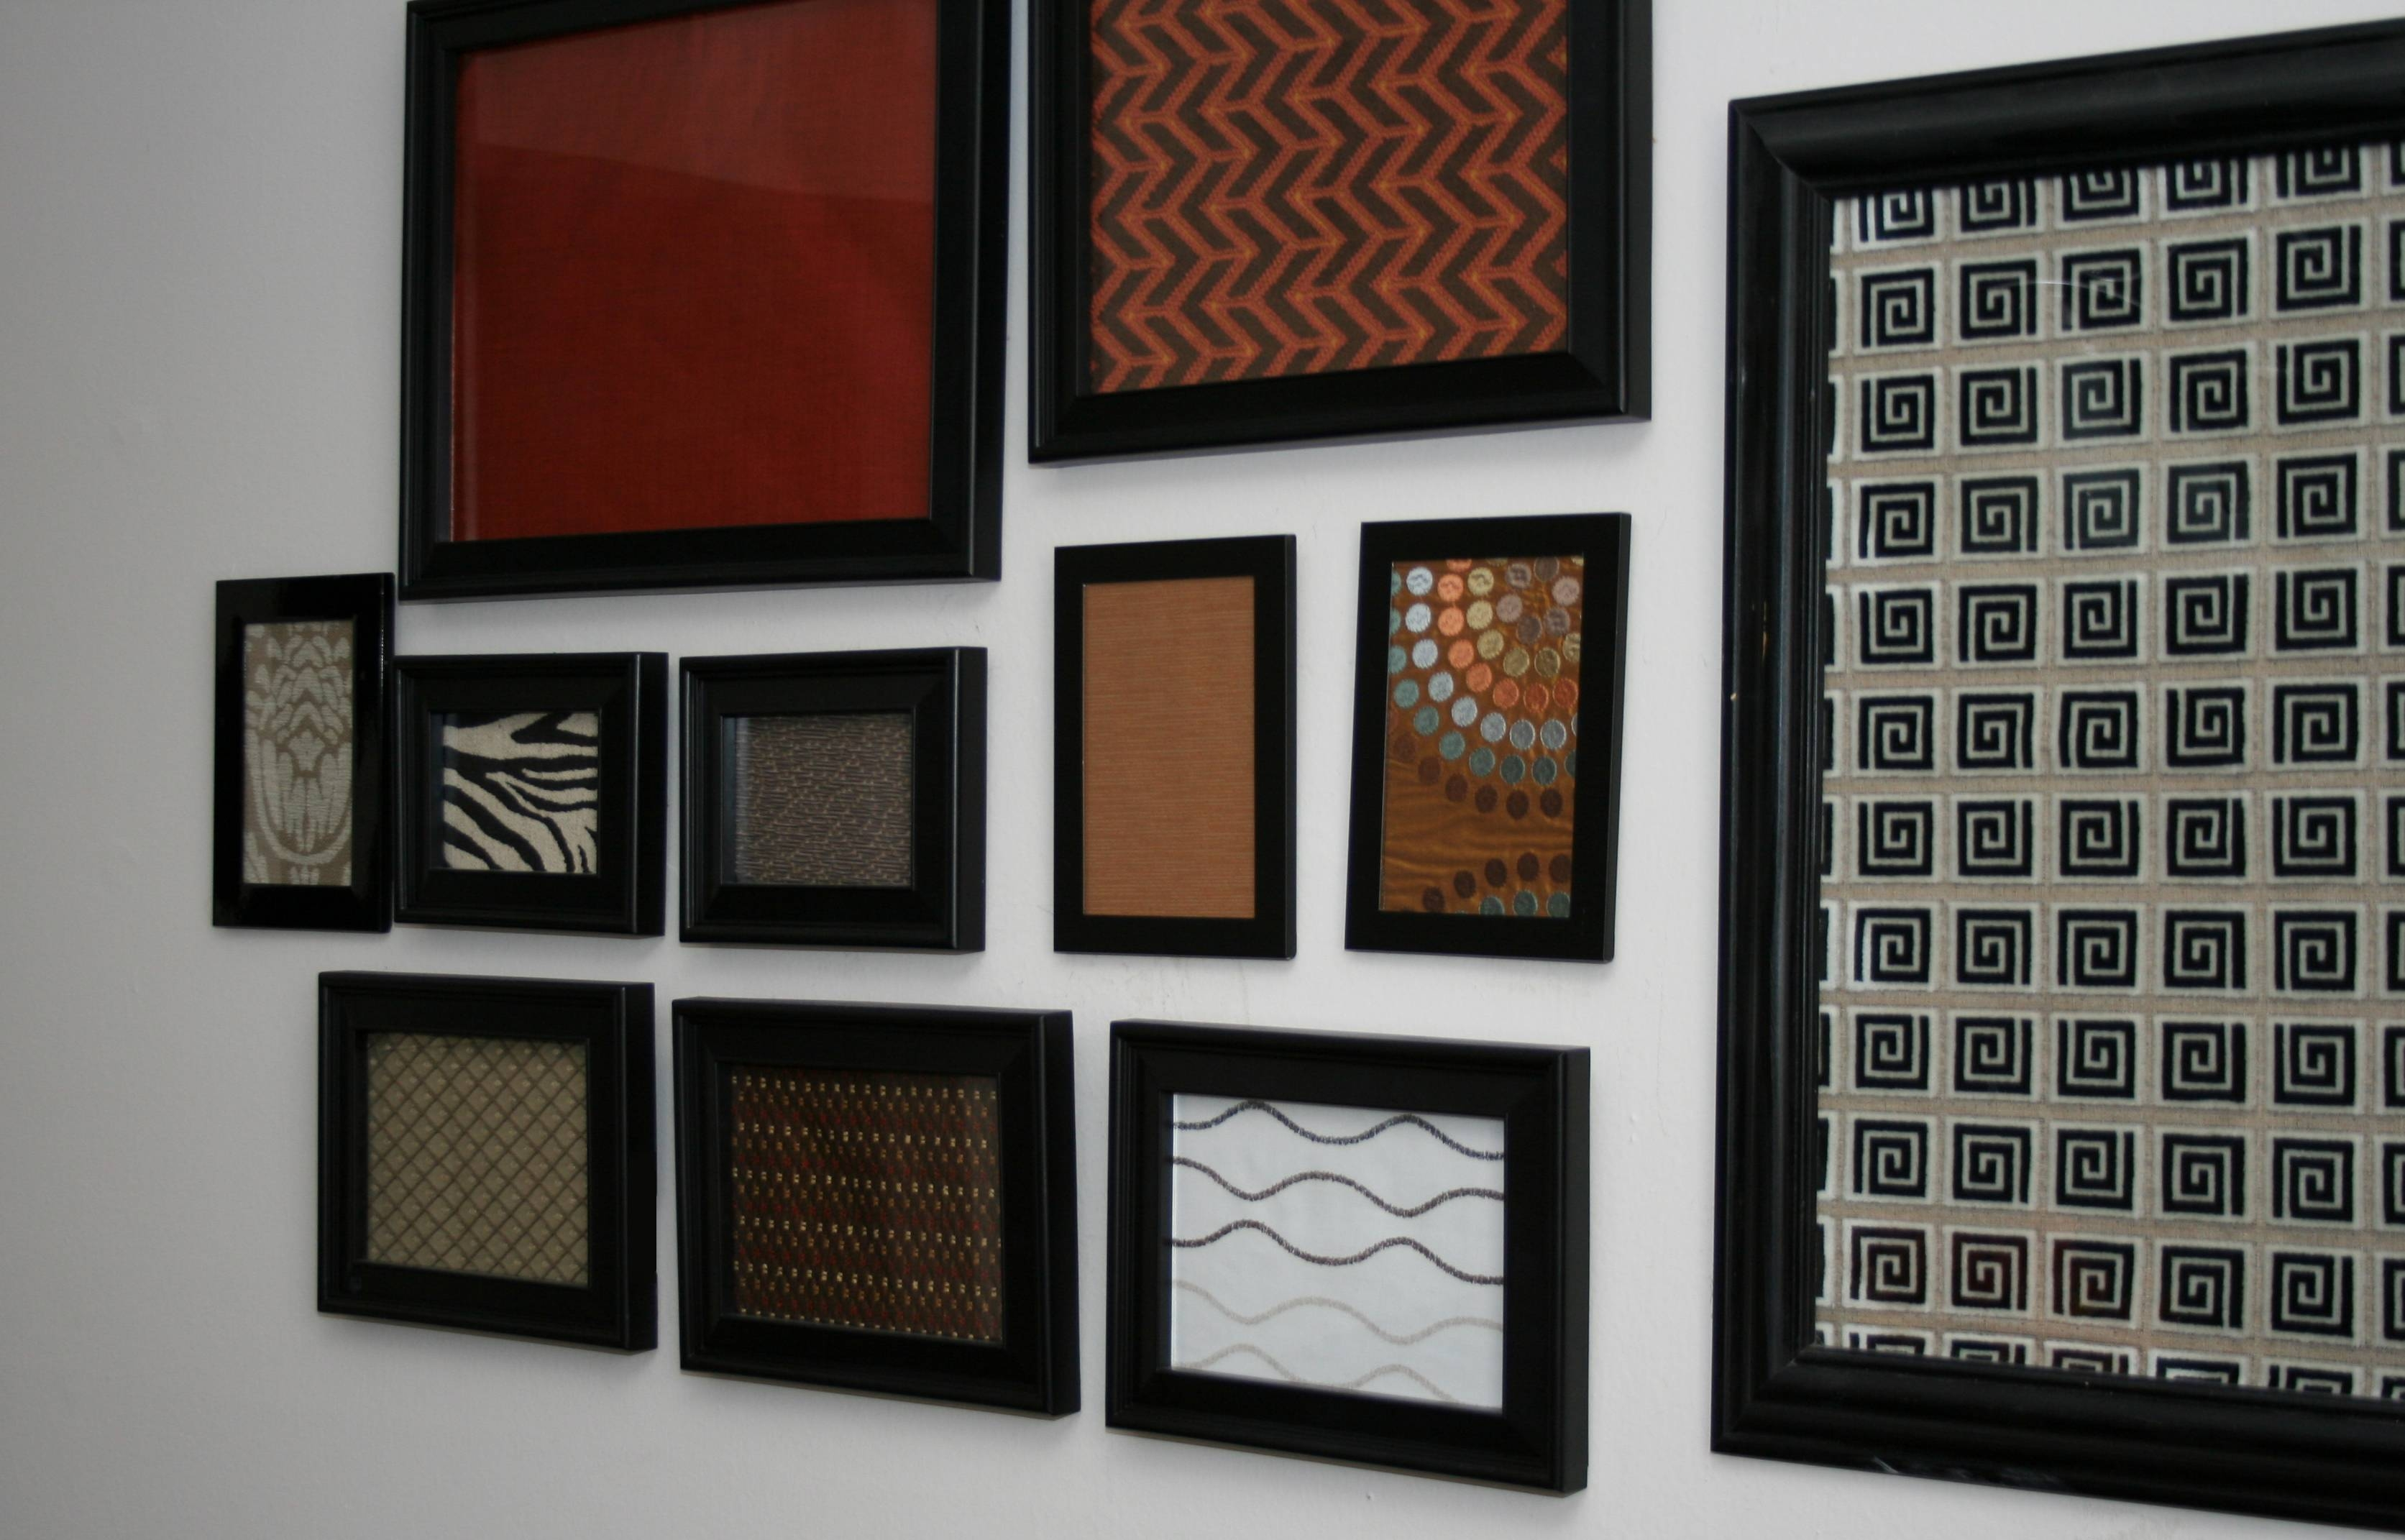 Art: Framed Fabric Wall Art Pertaining To Most Up To Date Framed Fabric Wall Art (View 2 of 20)